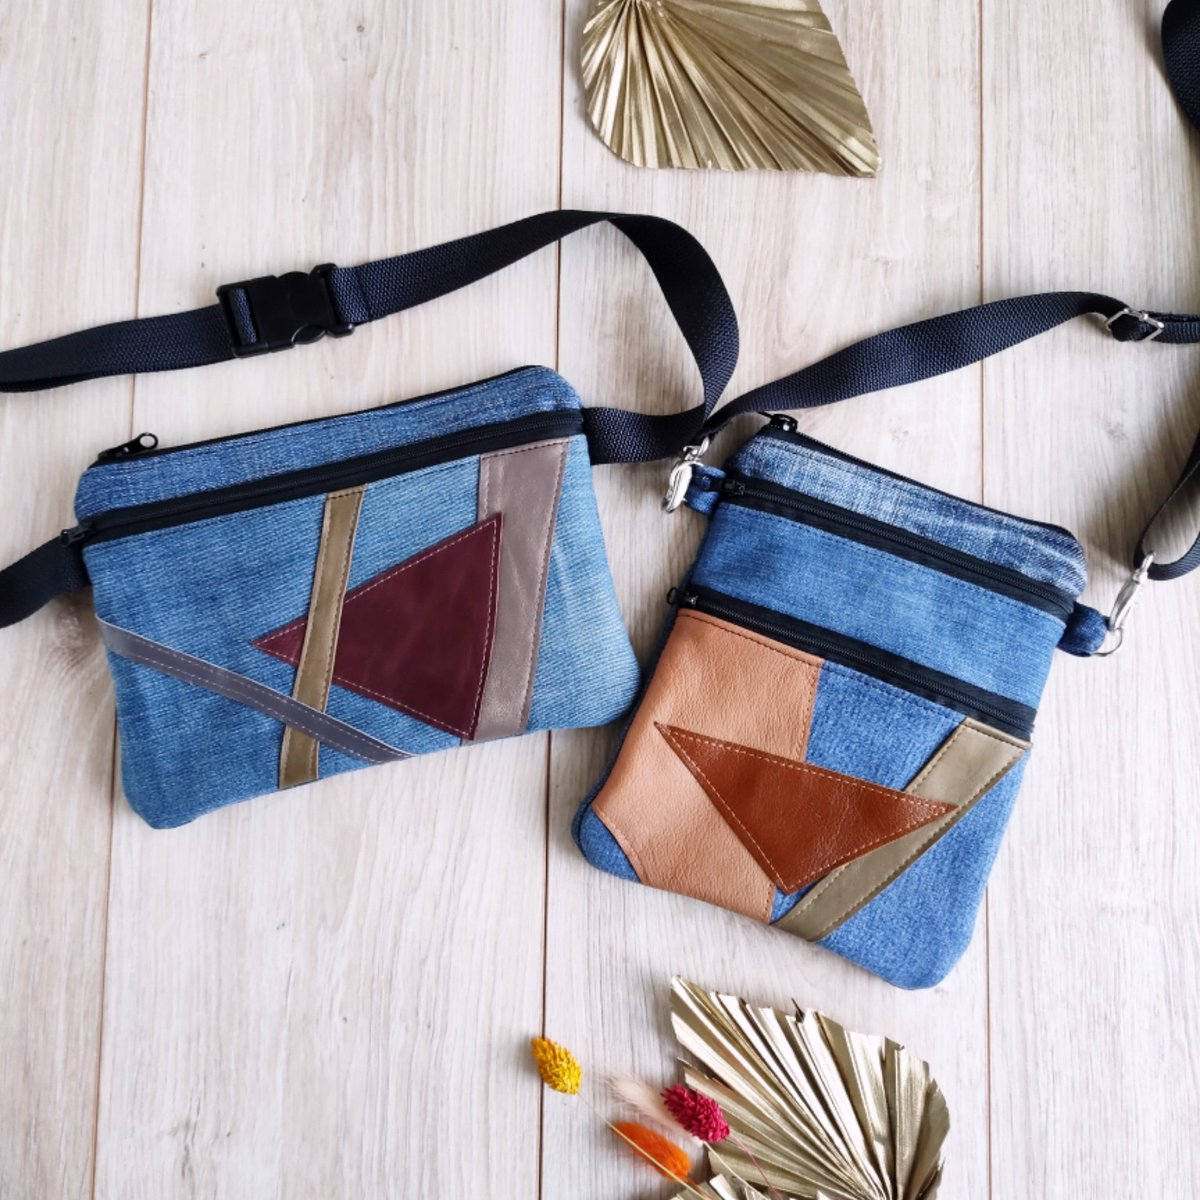 Another set made of recycled materials 💙 #airyfairybags #etsy #amazonfinds #amazonhandmade #bohochic #recycled #recyclecum #savetheplanet #spaceoddity #handmade #upcycling #upcycle #recycling #denim #jeansstyle #jeans #bags #bagstyle #blueplanet #recycledart